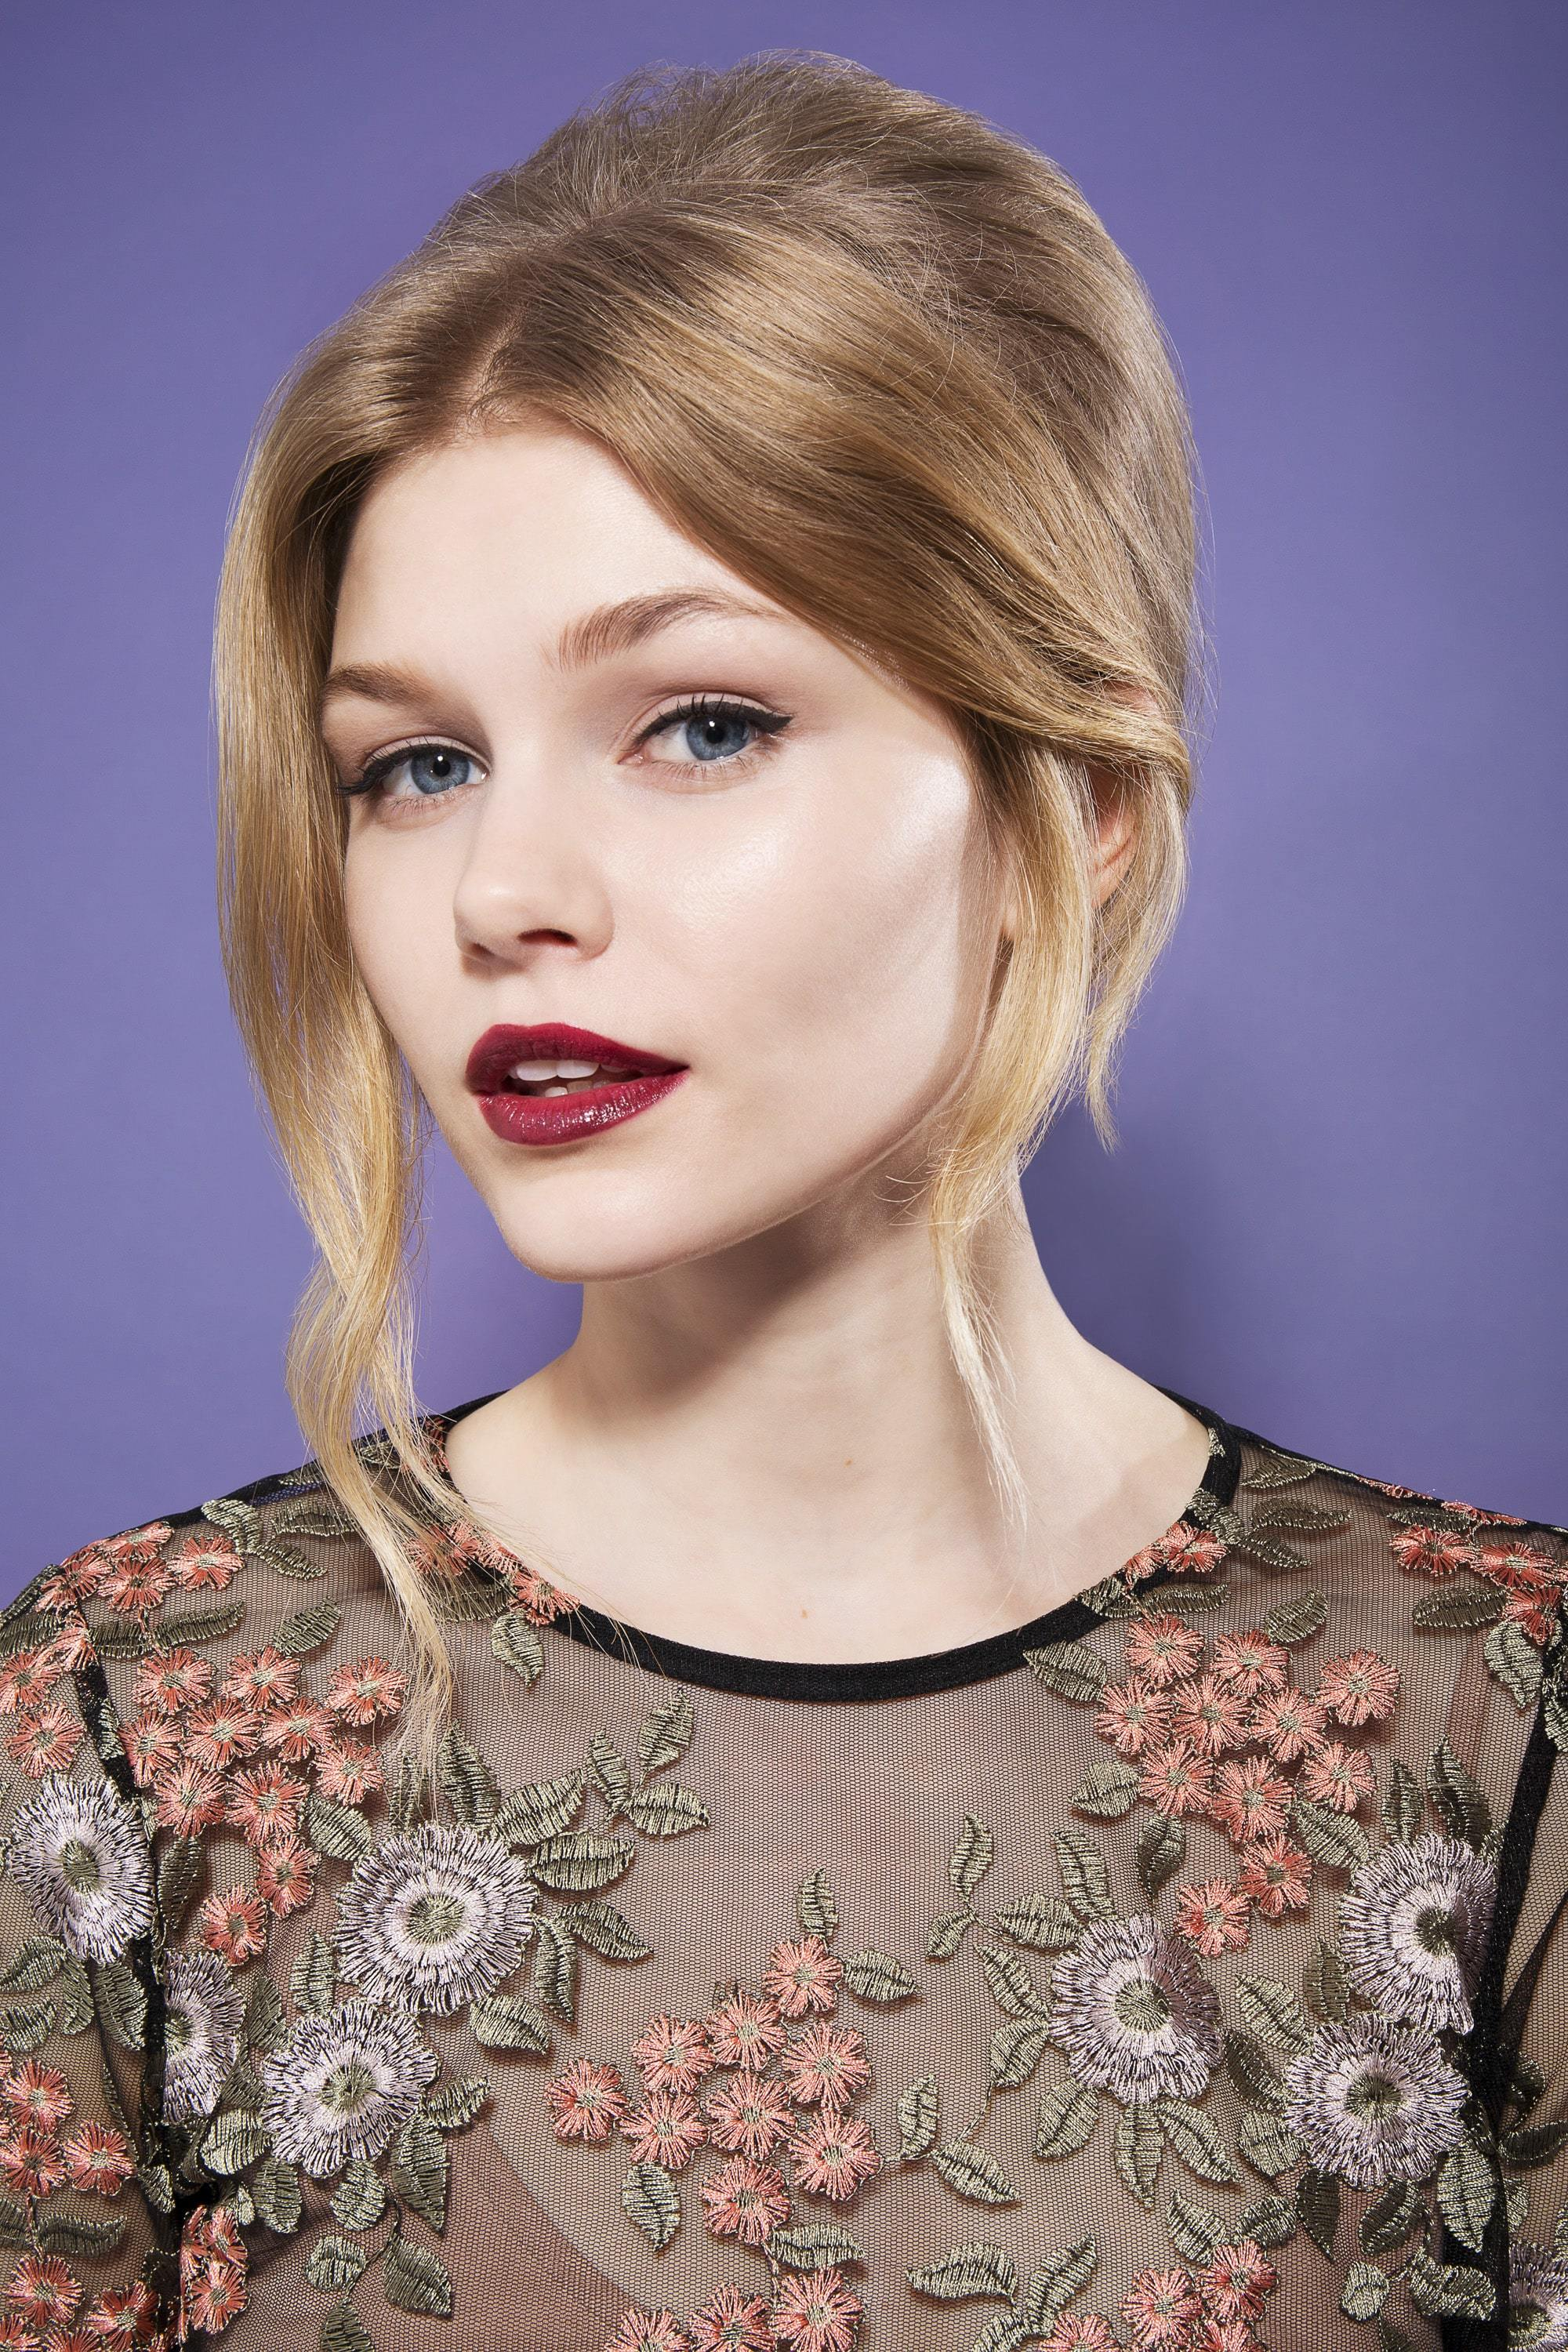 blonde model with straight and smooth hair in high beehive with loose sweeping long fringe wearing sheer floral top and dark red lipstick